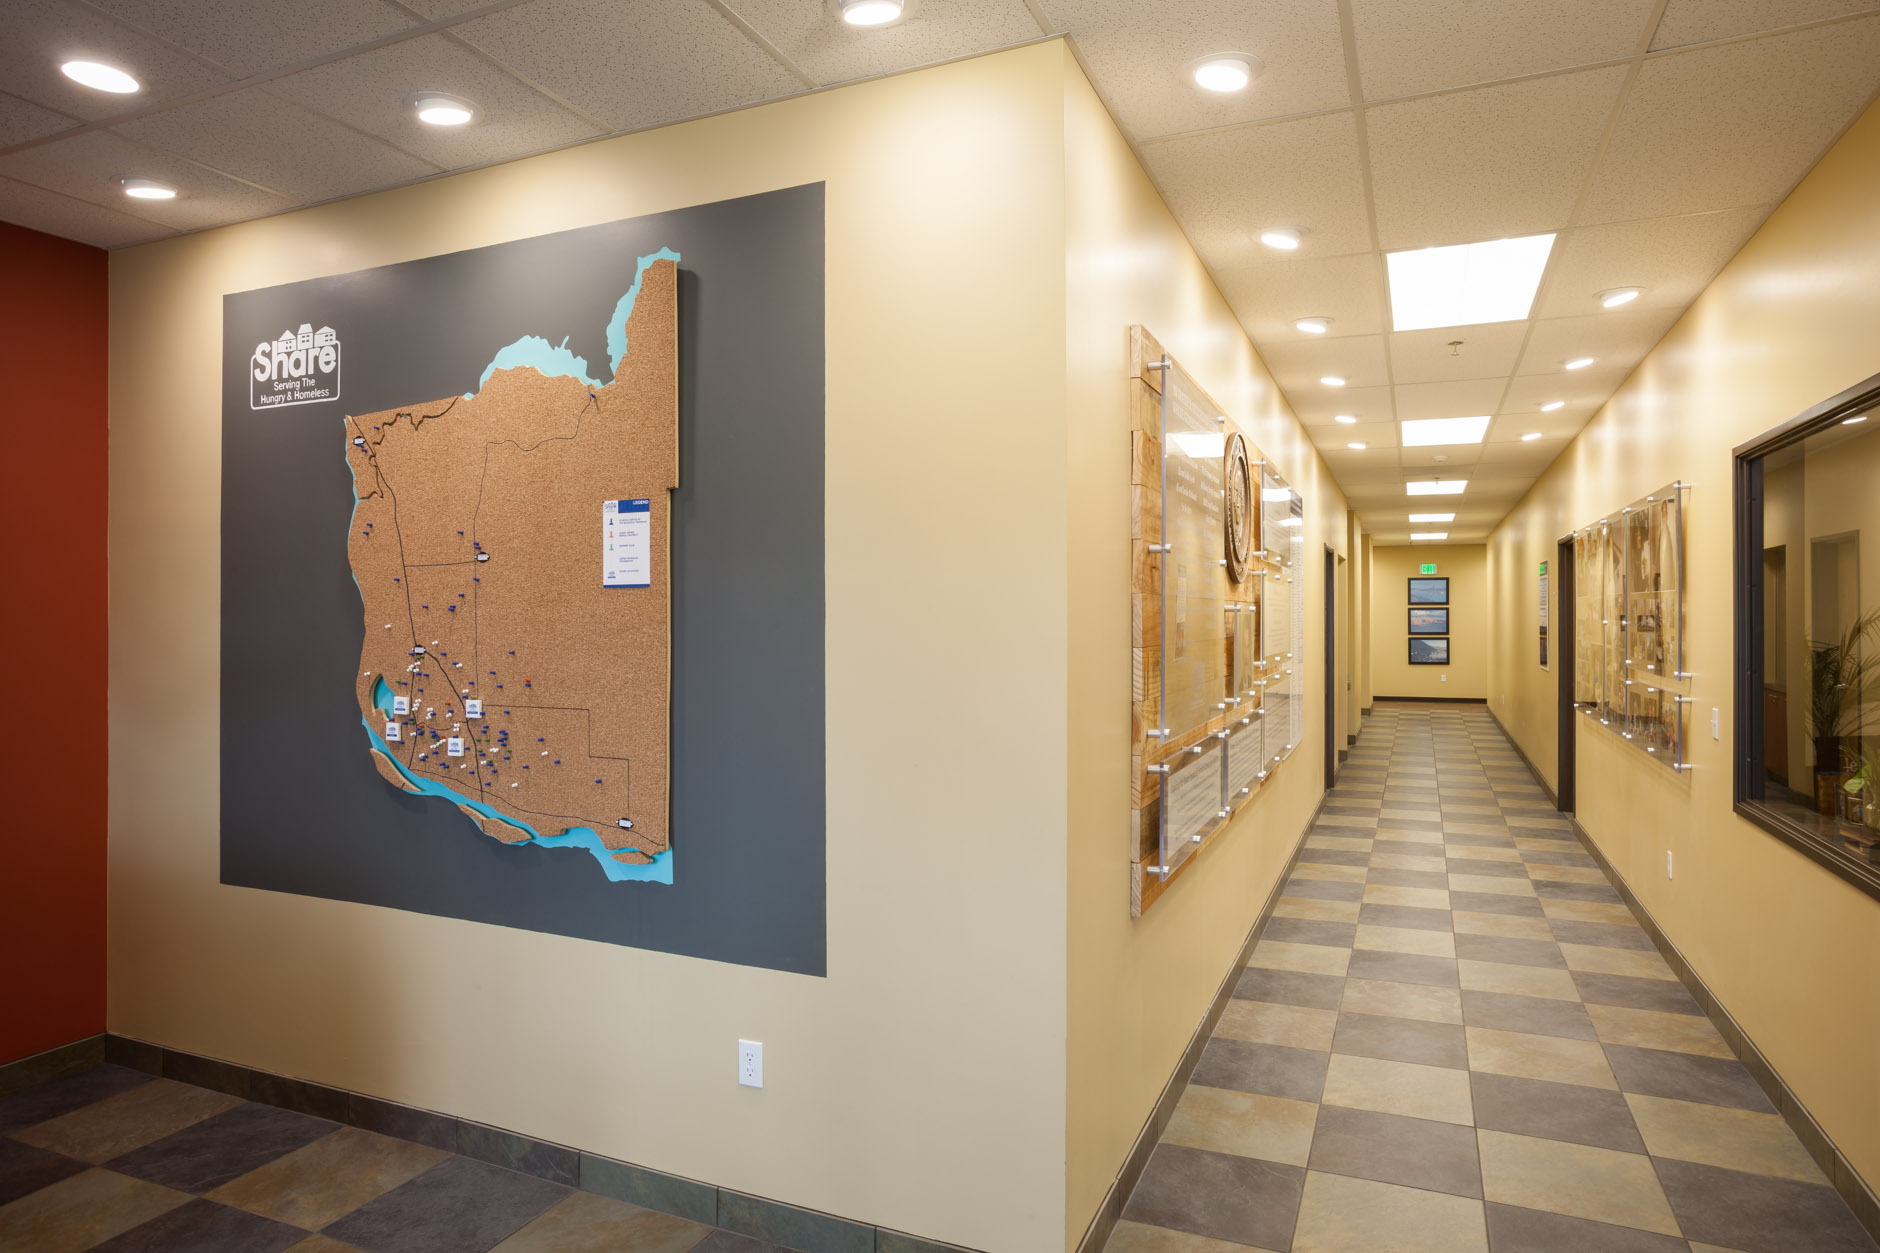 Share Fromhold Service Center - Cork board Map and Hallway Displays